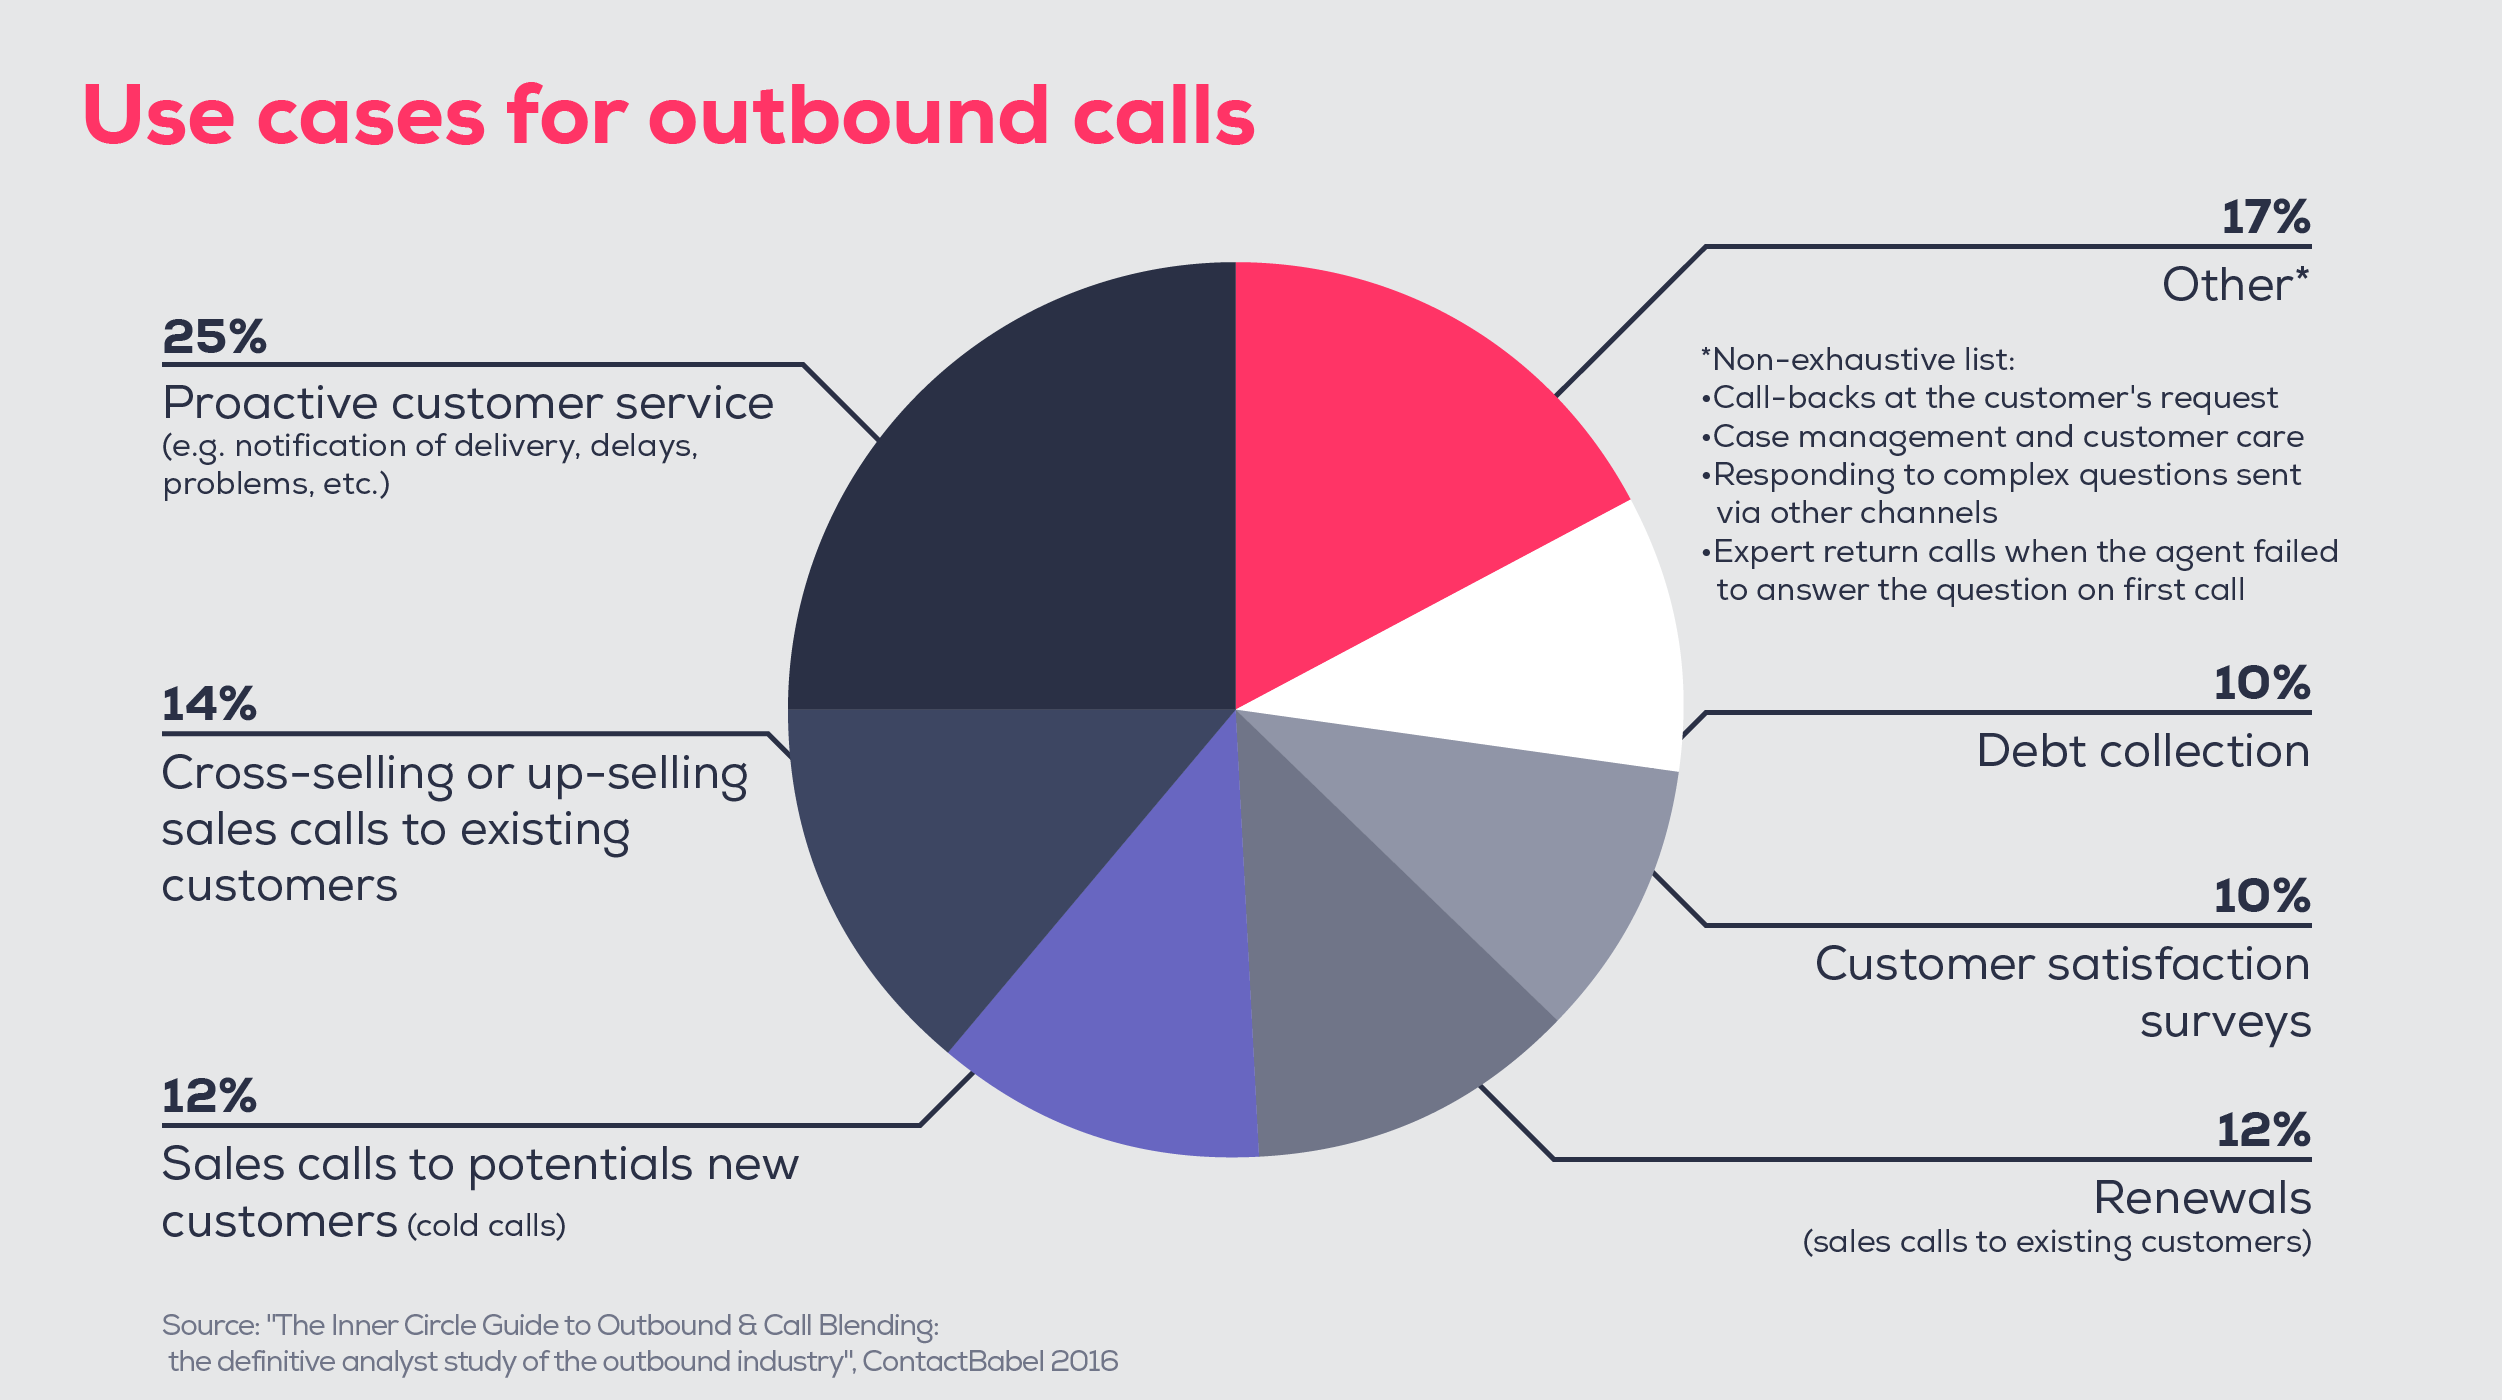 Outbound calls use cases